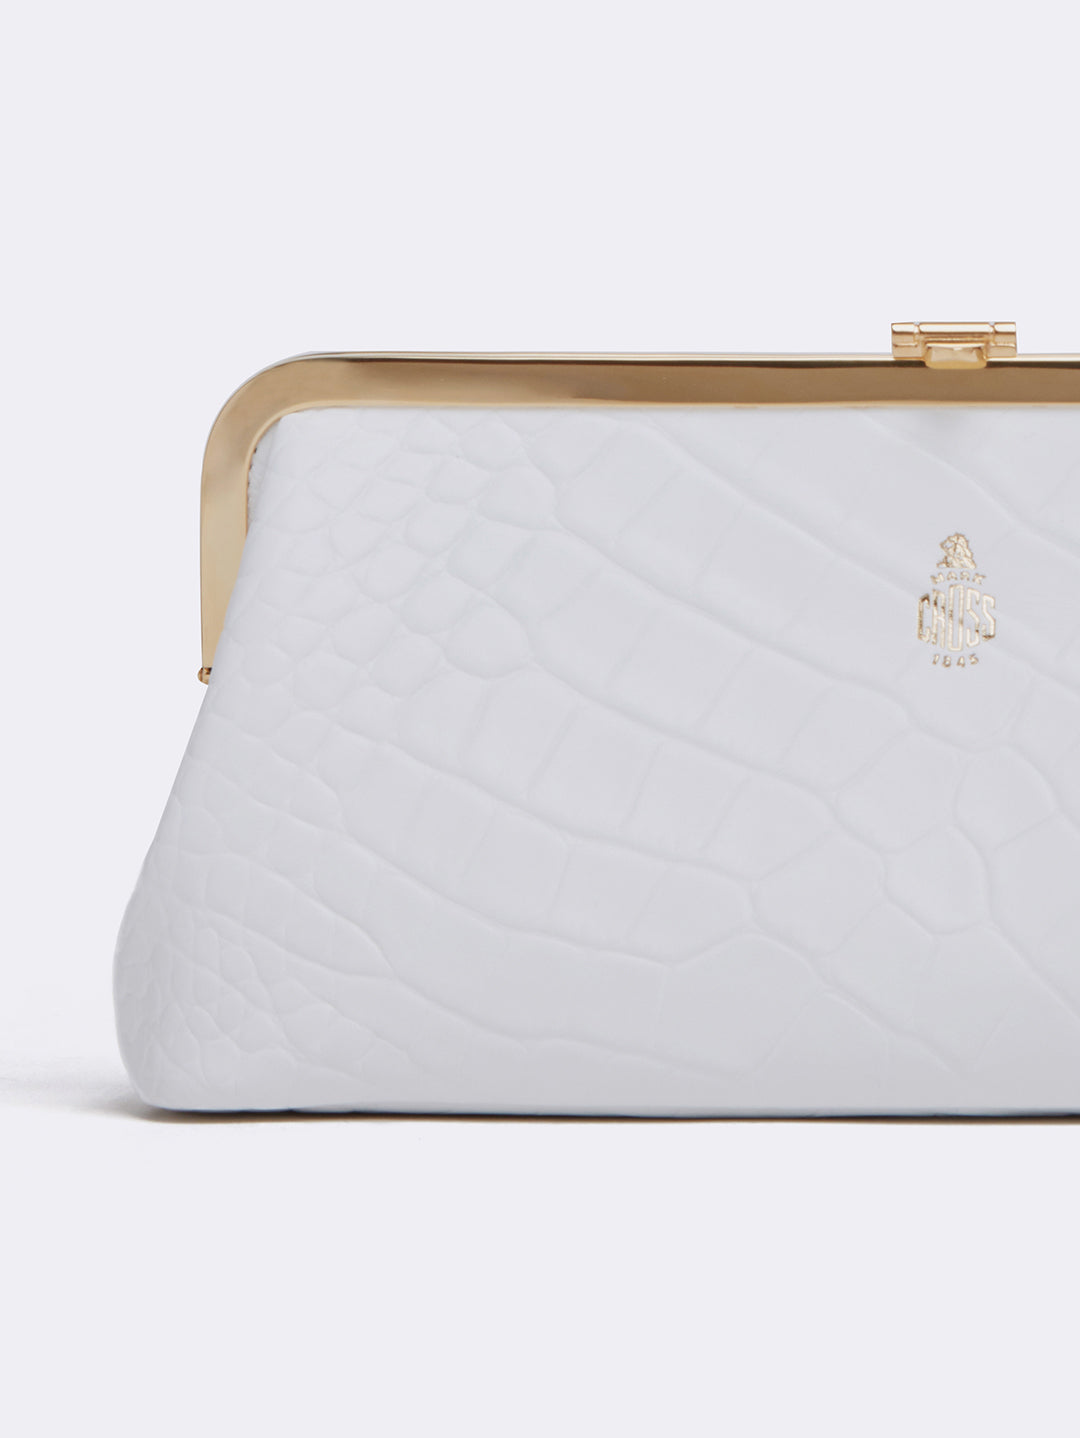 Mark Cross Susanna Leather Frame Clutch Crocodile Stamped White Detail